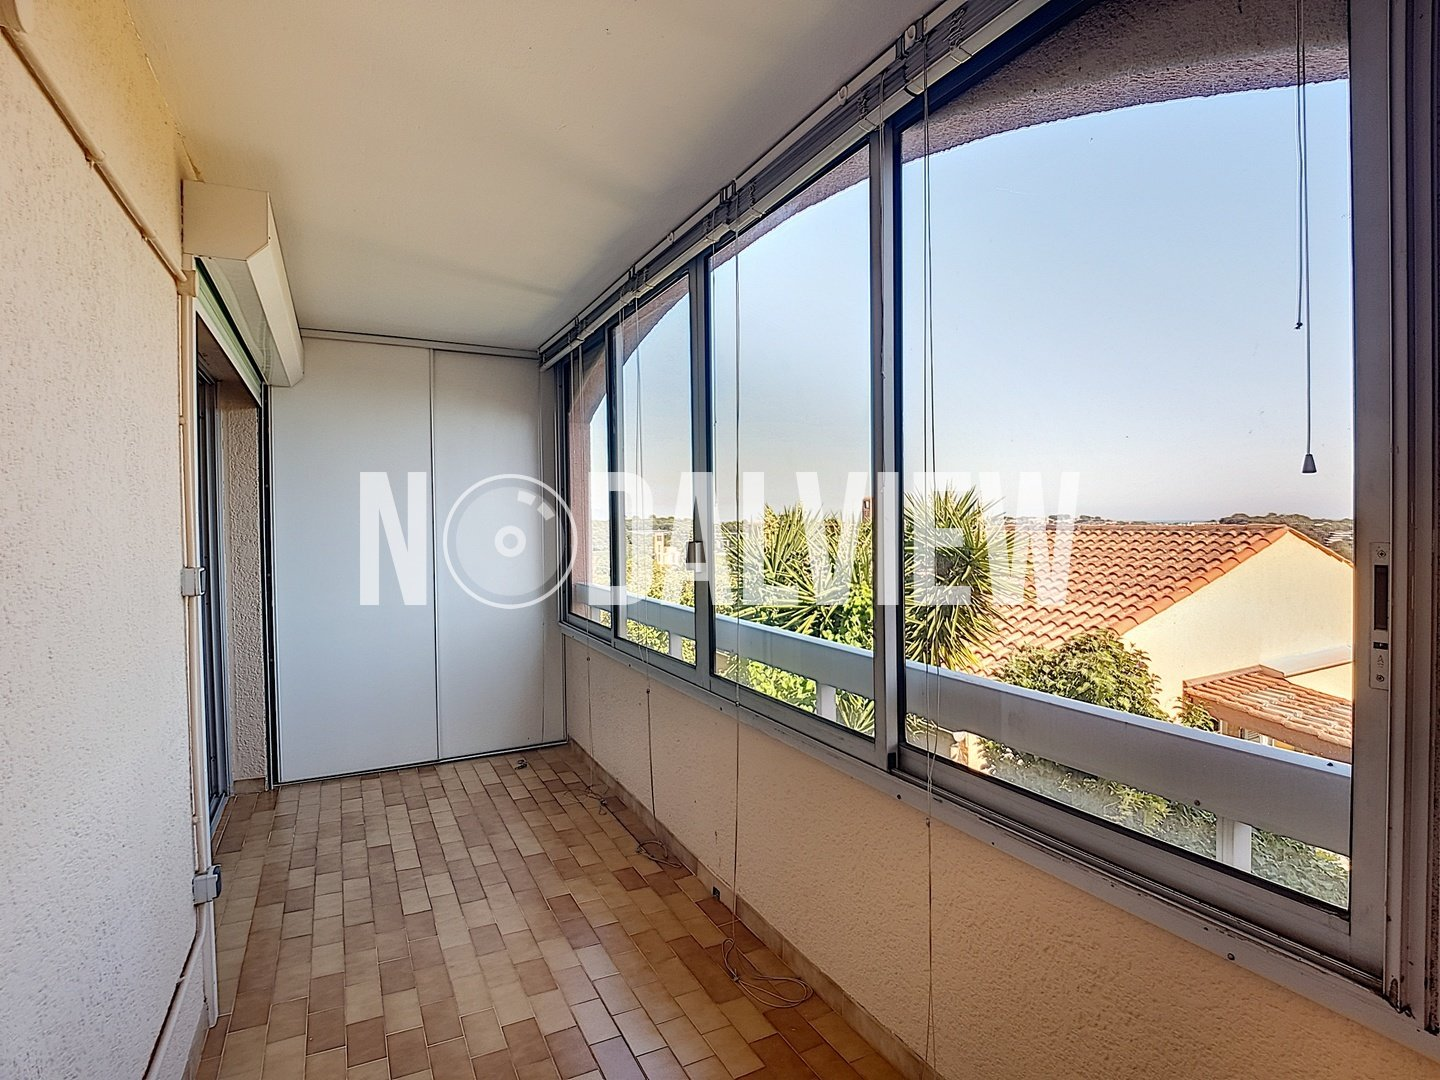 Spacious 3 rooms apartment with garage in the heart of Sophia Antipolis